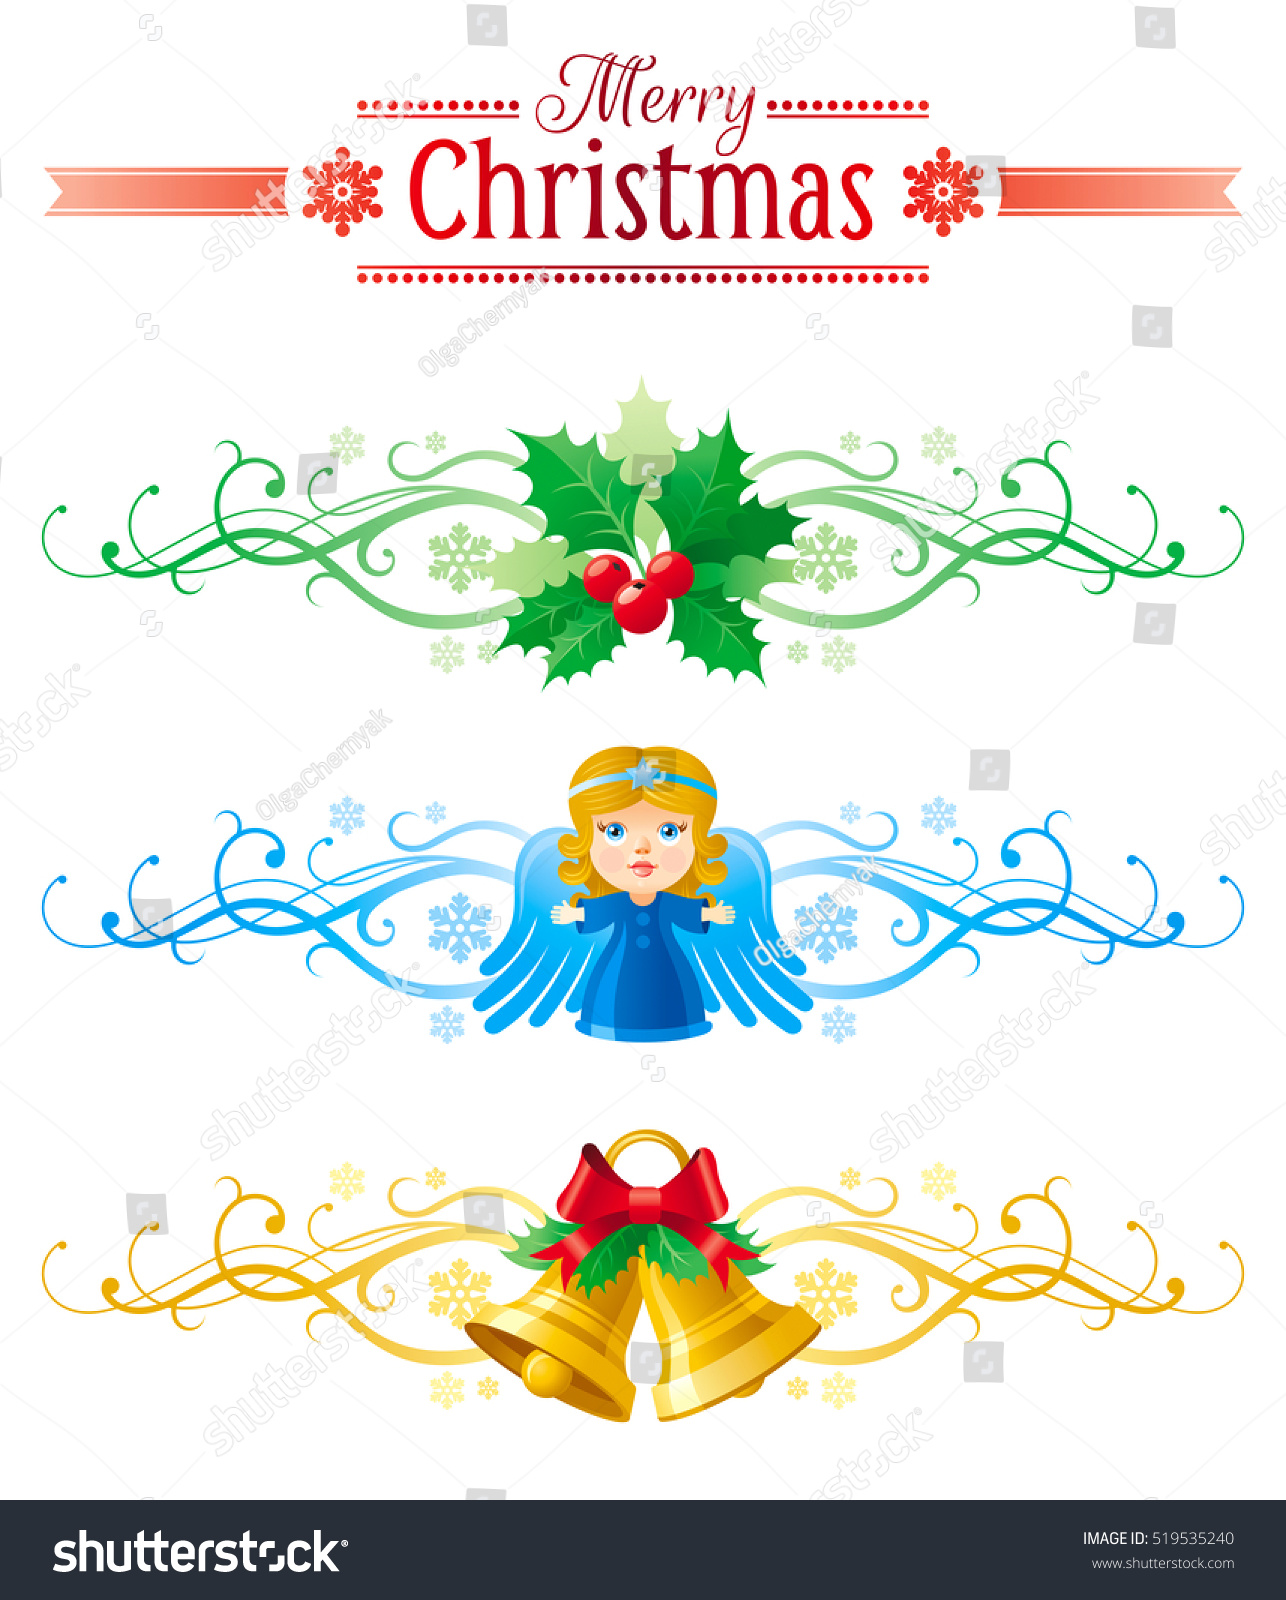 Merry Christmas banner set white background Vector illustration jingle bells holly berry angel snow baby girl Snowflake ribbon holiday decoration